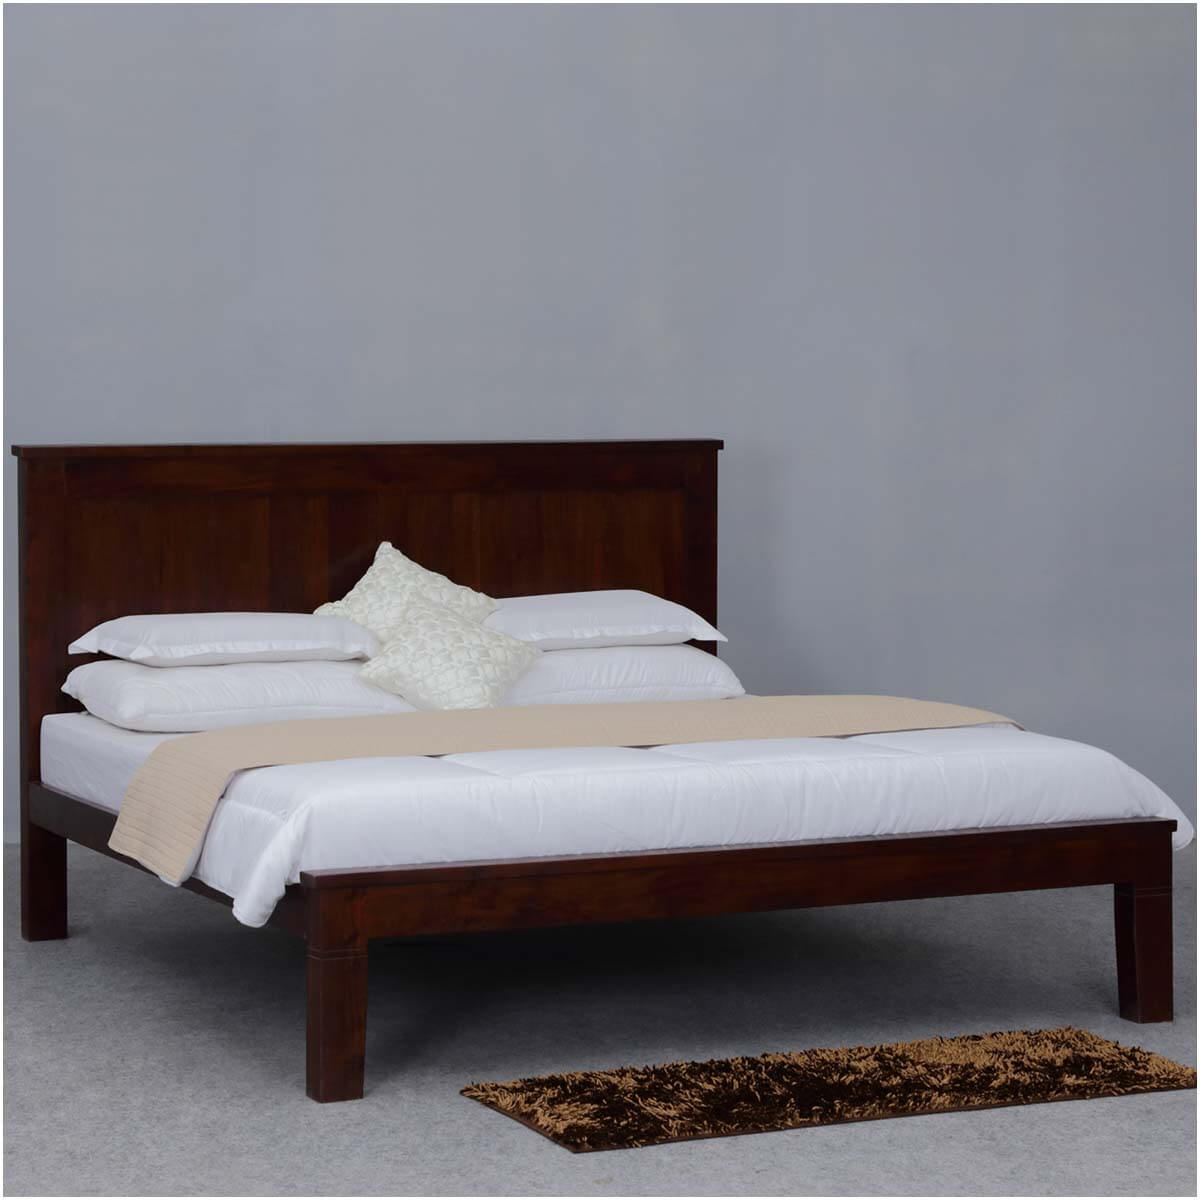 simply mission acacia wood king size platform bed w headboard. Black Bedroom Furniture Sets. Home Design Ideas